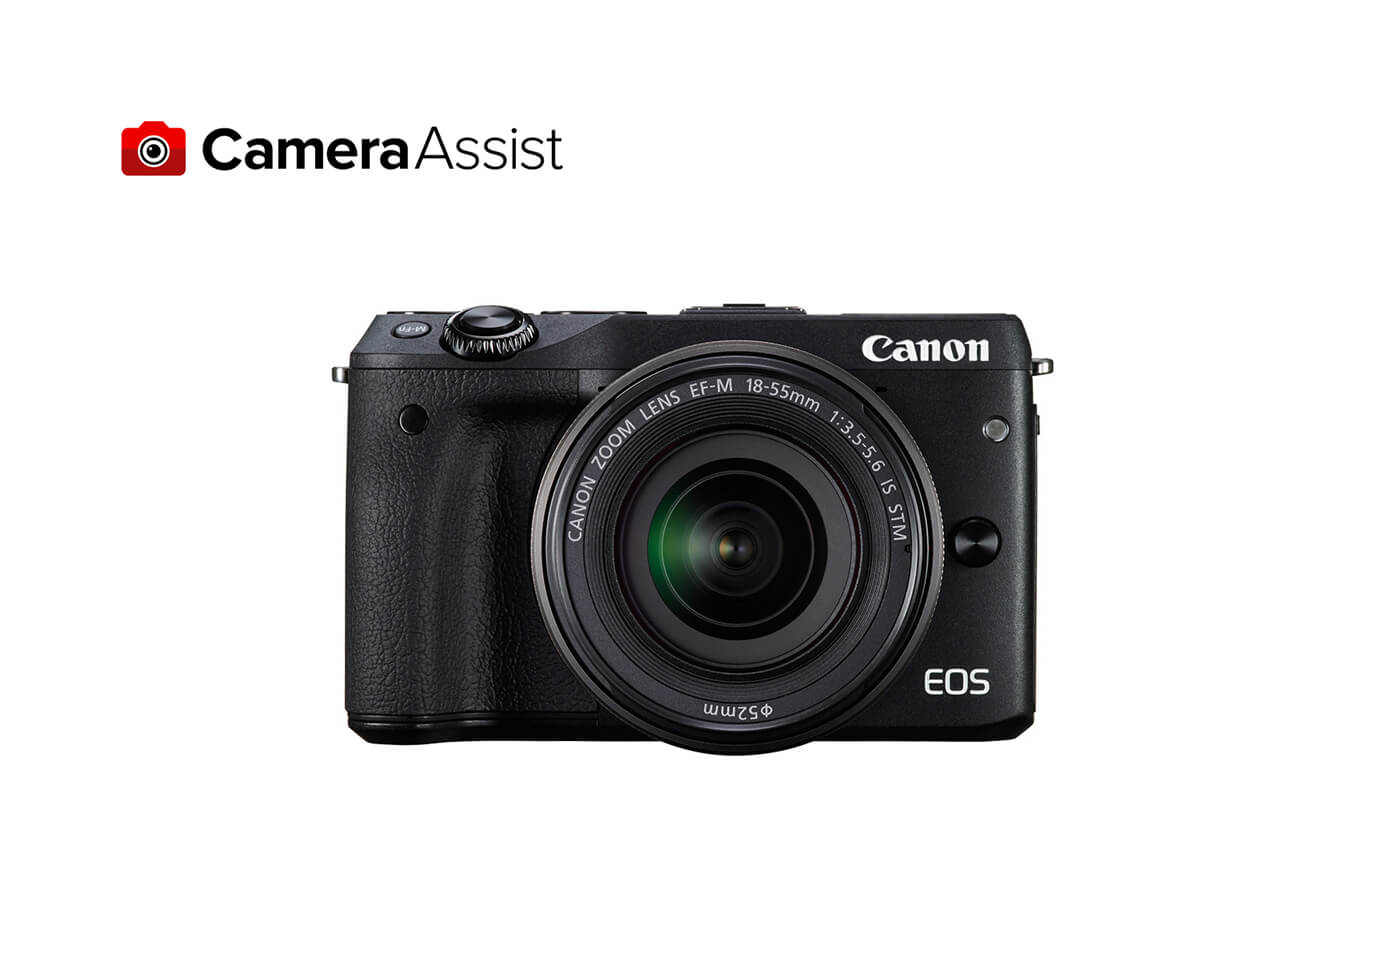 EOS M3 front image